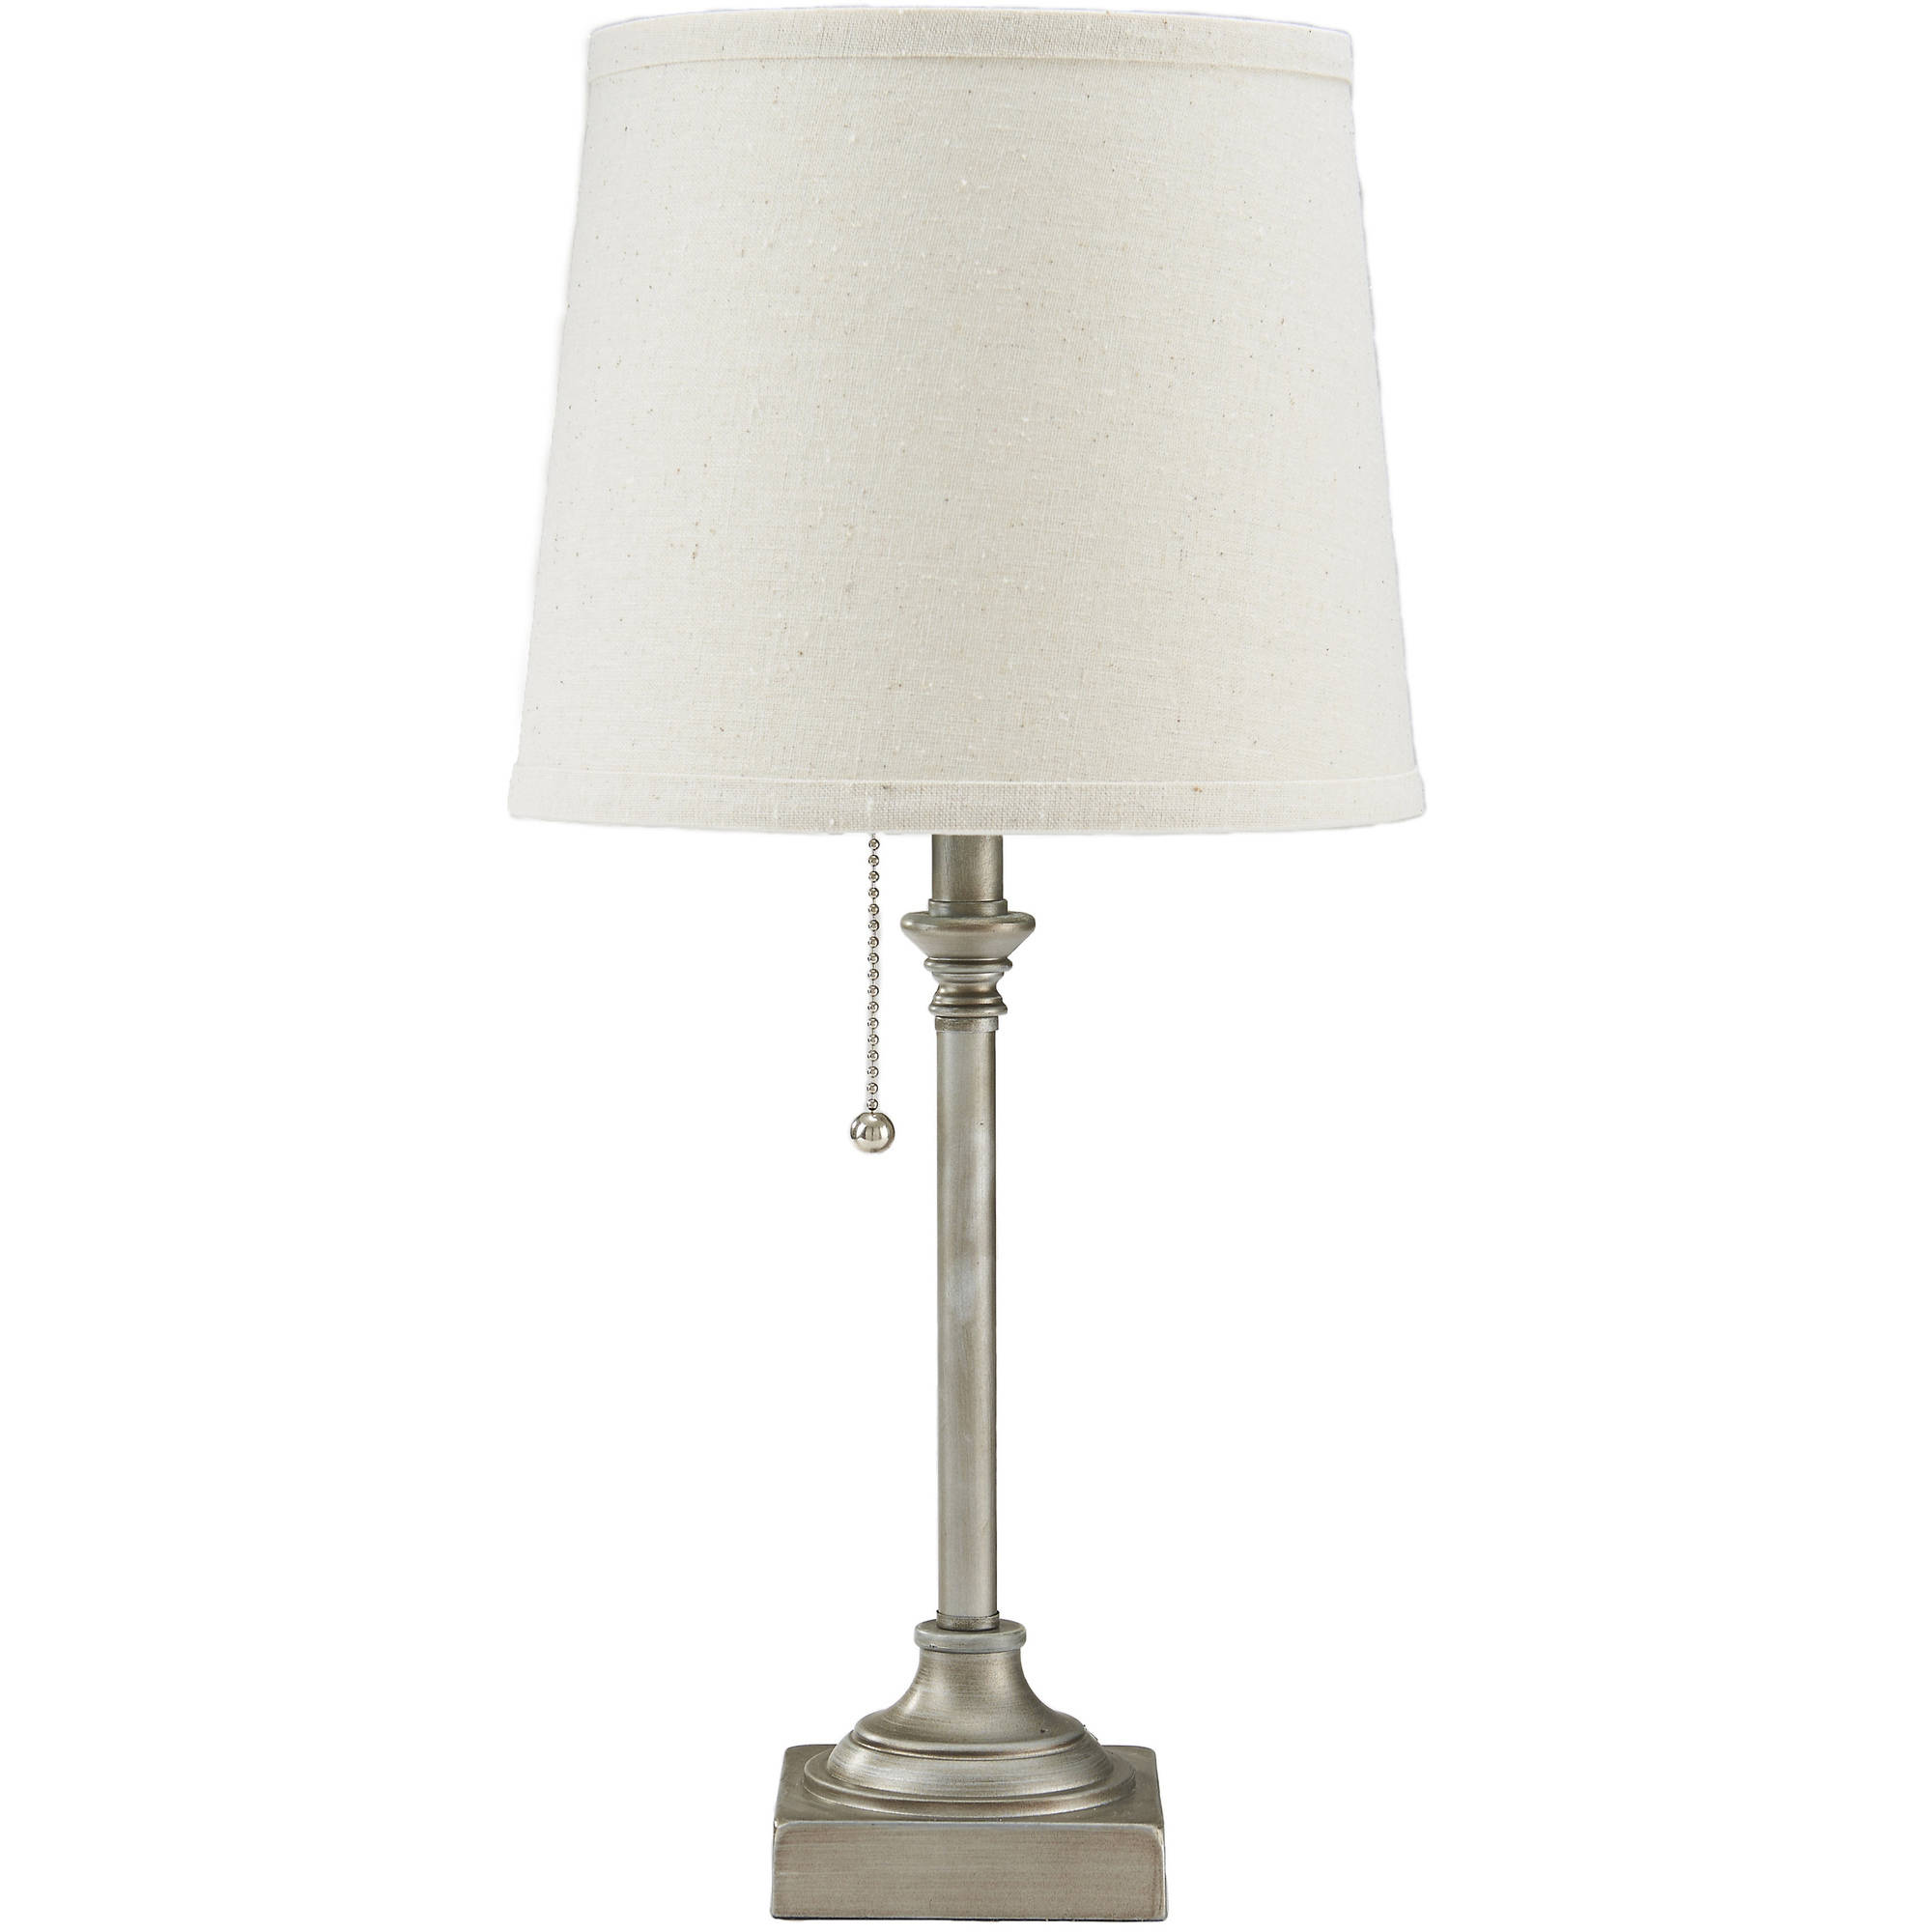 "Mainstays 19"" Pull Chain Accent Lamp, Silver Finish by Evolution Lighting"